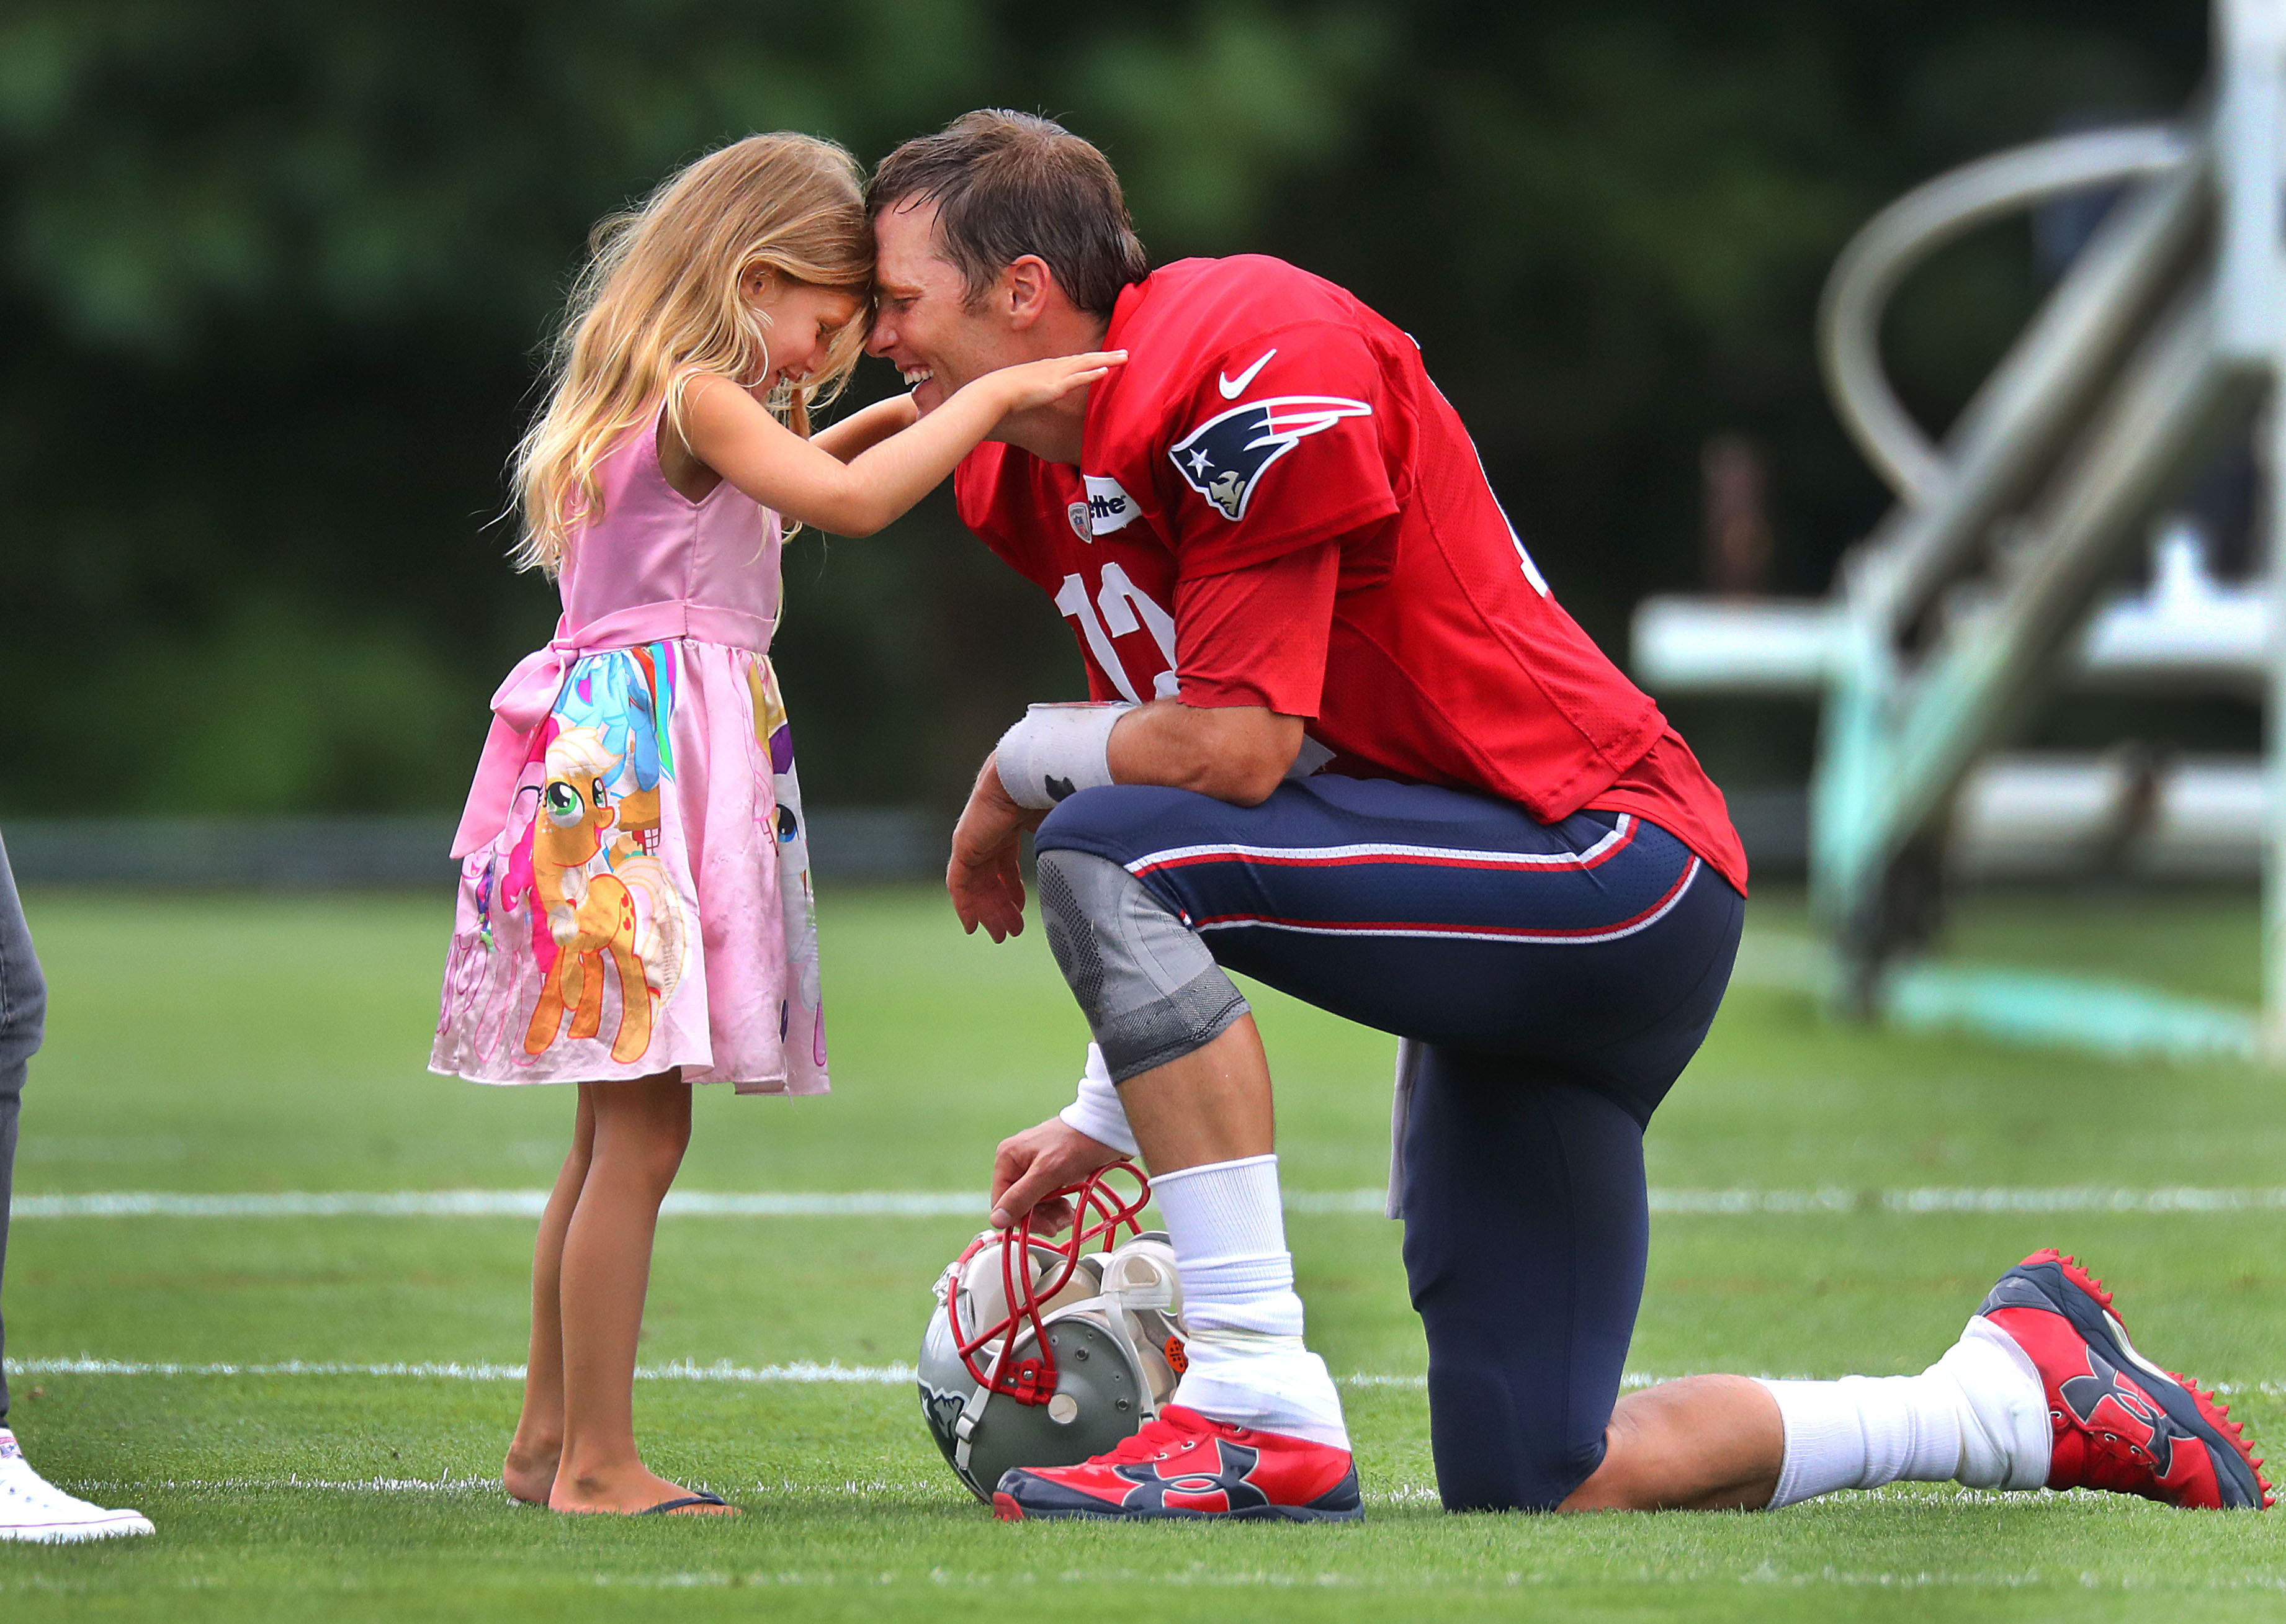 FOXBOROUGH, MA - AUGUST 1: New England Patriots quarterback Tom Brady spends some time with his daughter, Vivian, 5, after Patriots training camp at the Gillette Stadium practice facility in Foxborough, MA on Aug. 1, 2018. (Photo by John Tlumacki/The Boston Globe via Getty Images)